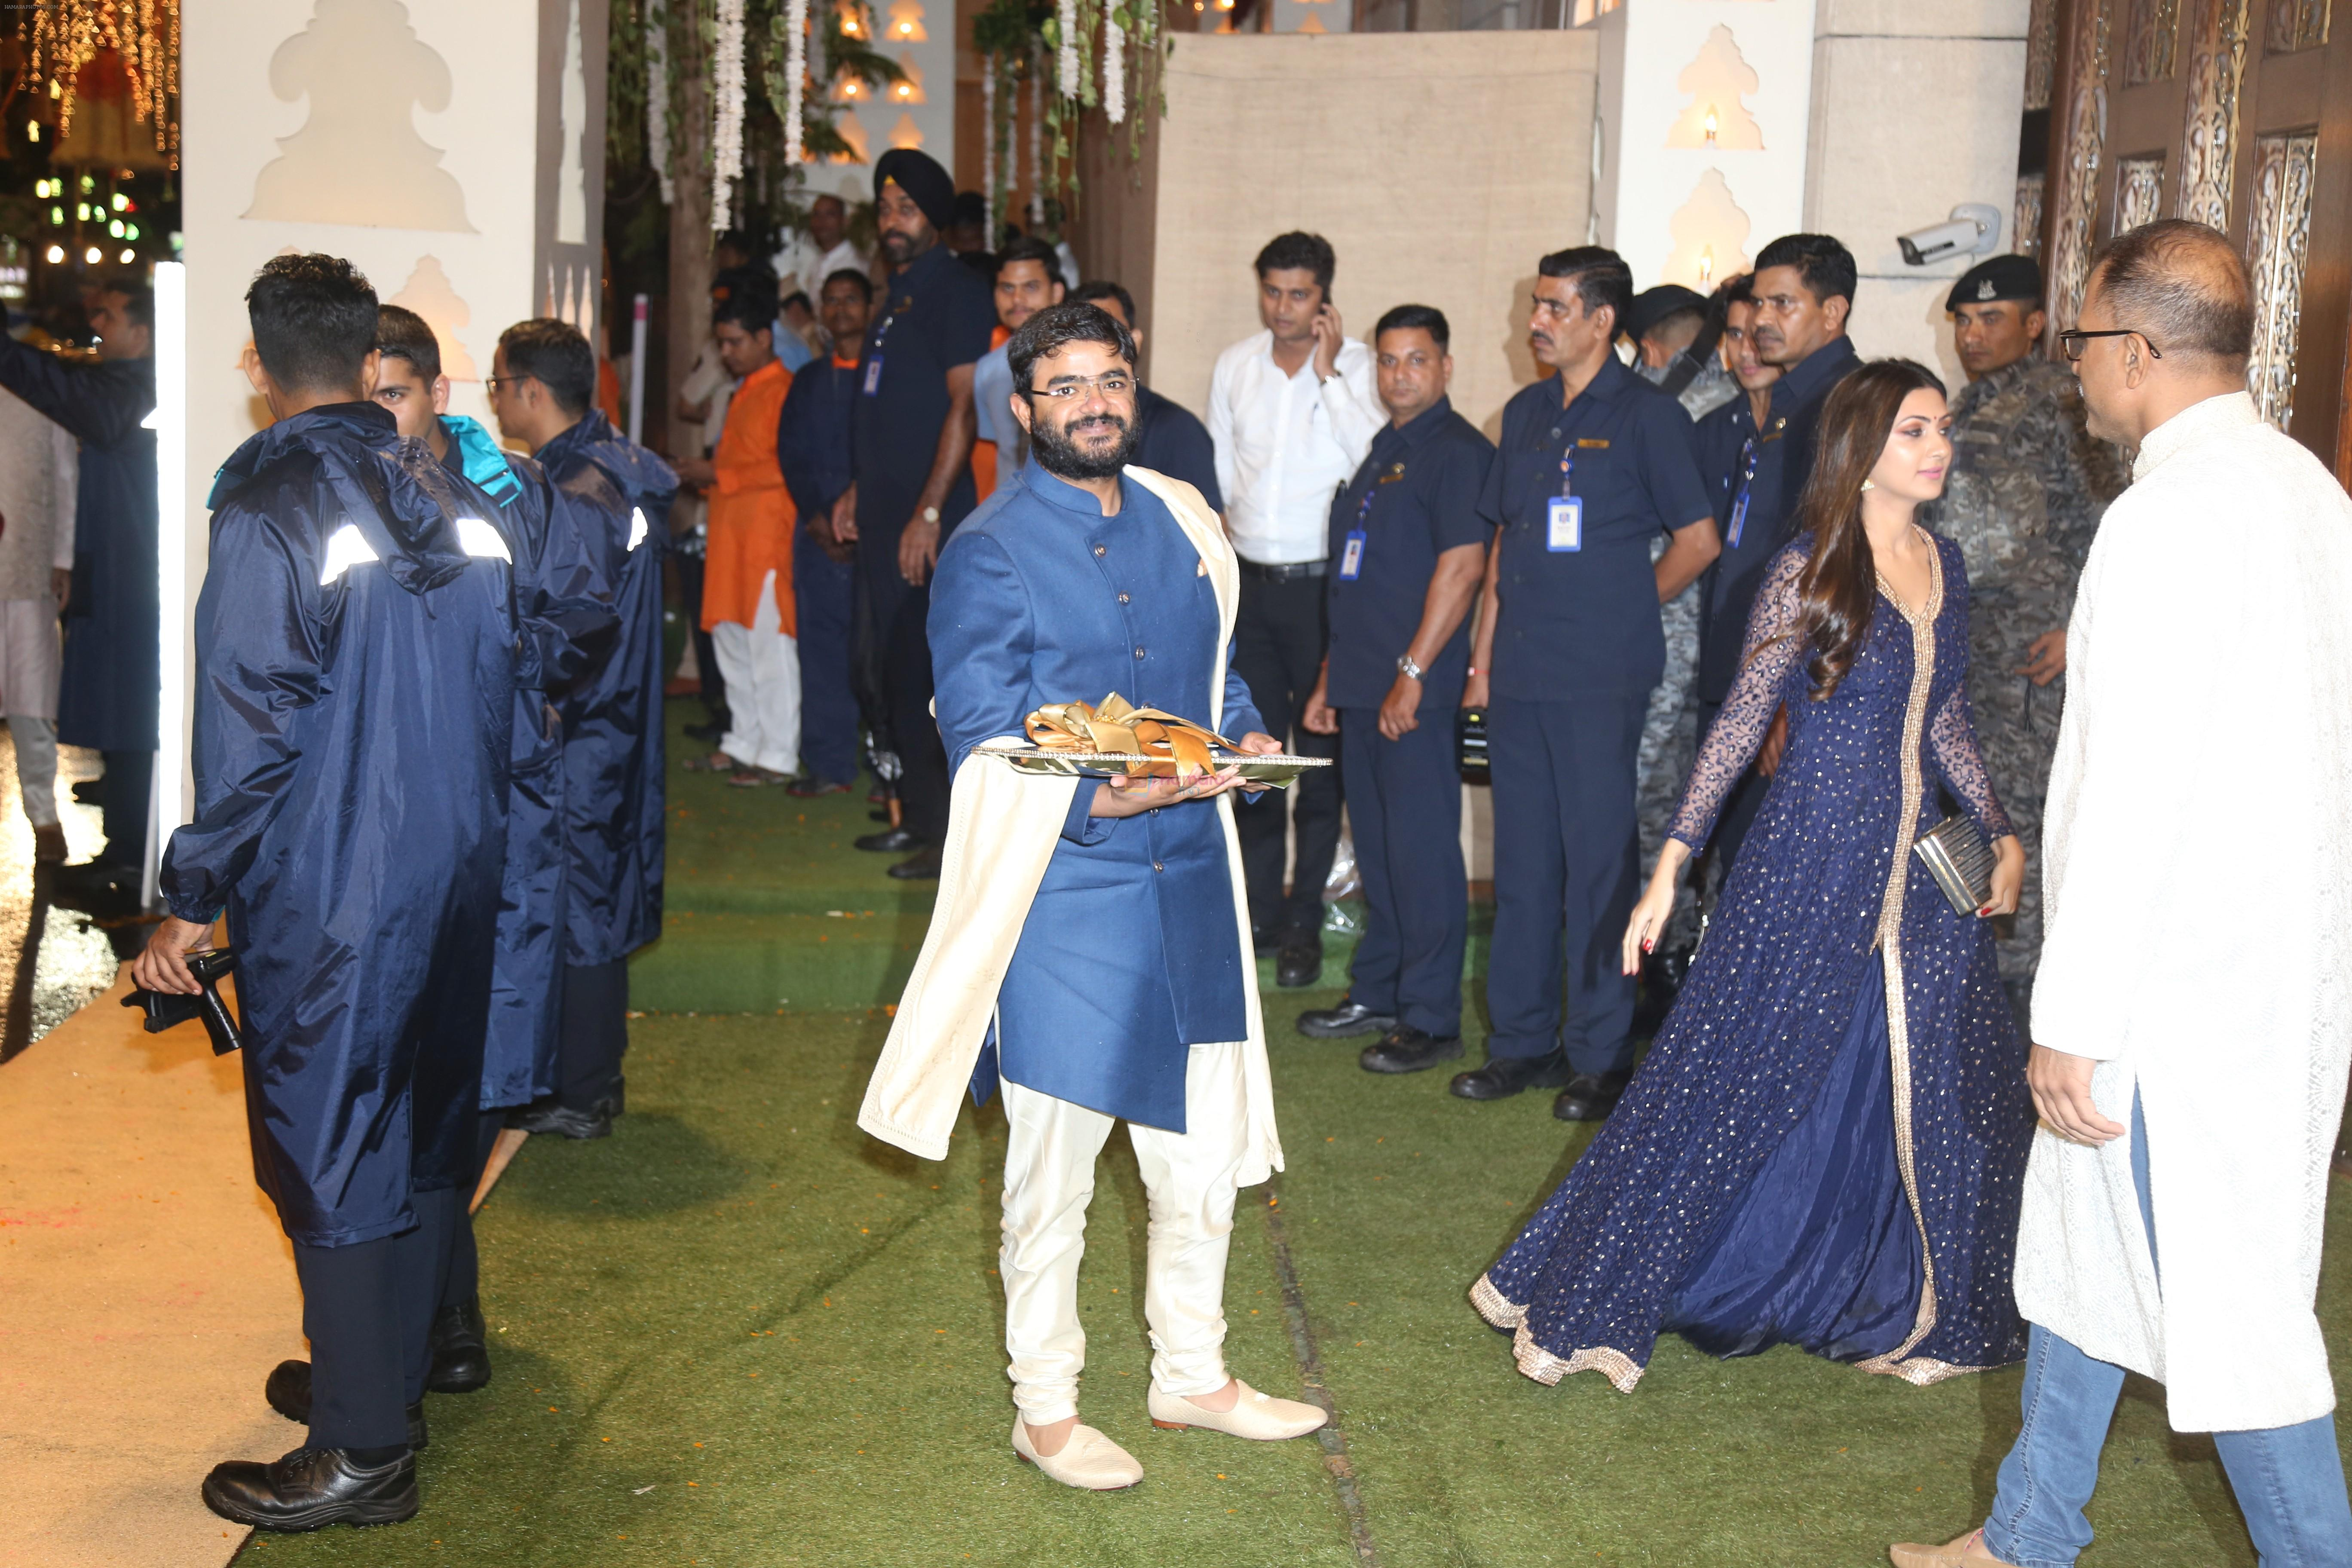 at Mukesh Ambani's house for Ganpati celebration on 2nd Sept 2019